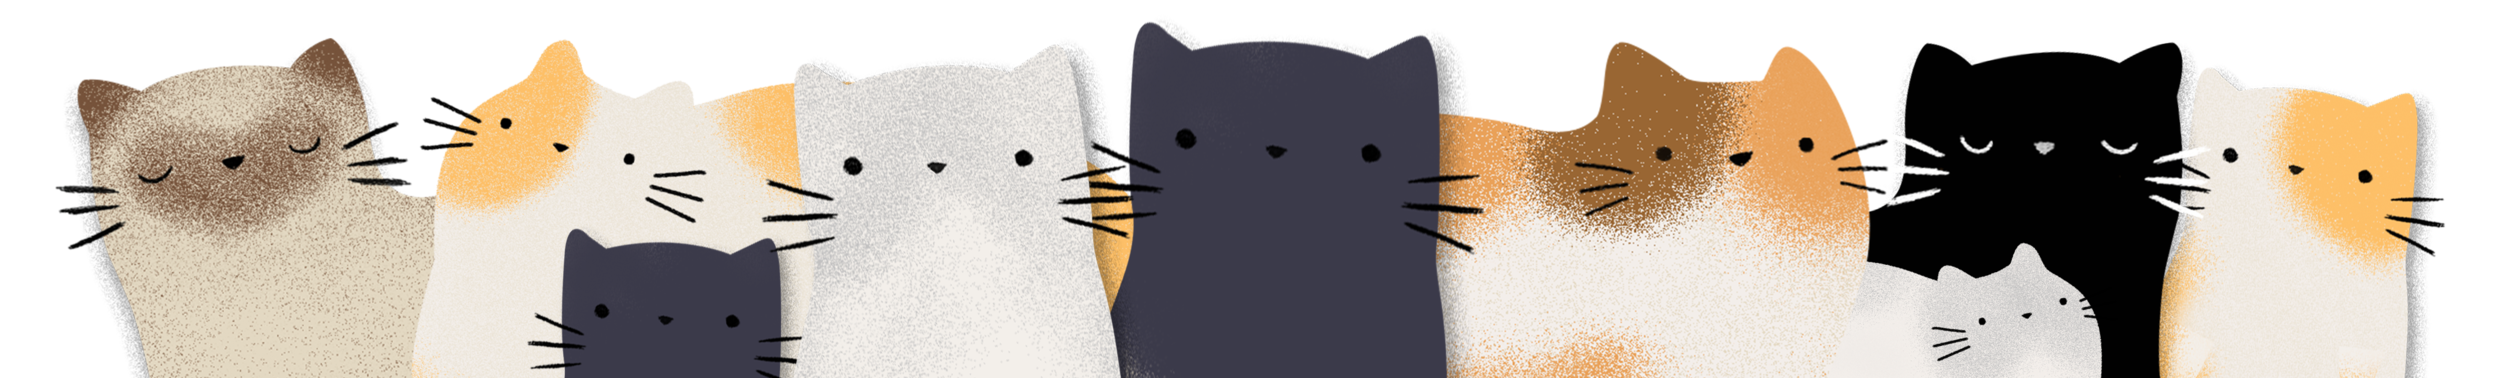 Lots of animated cats that comprise a banner footer image.